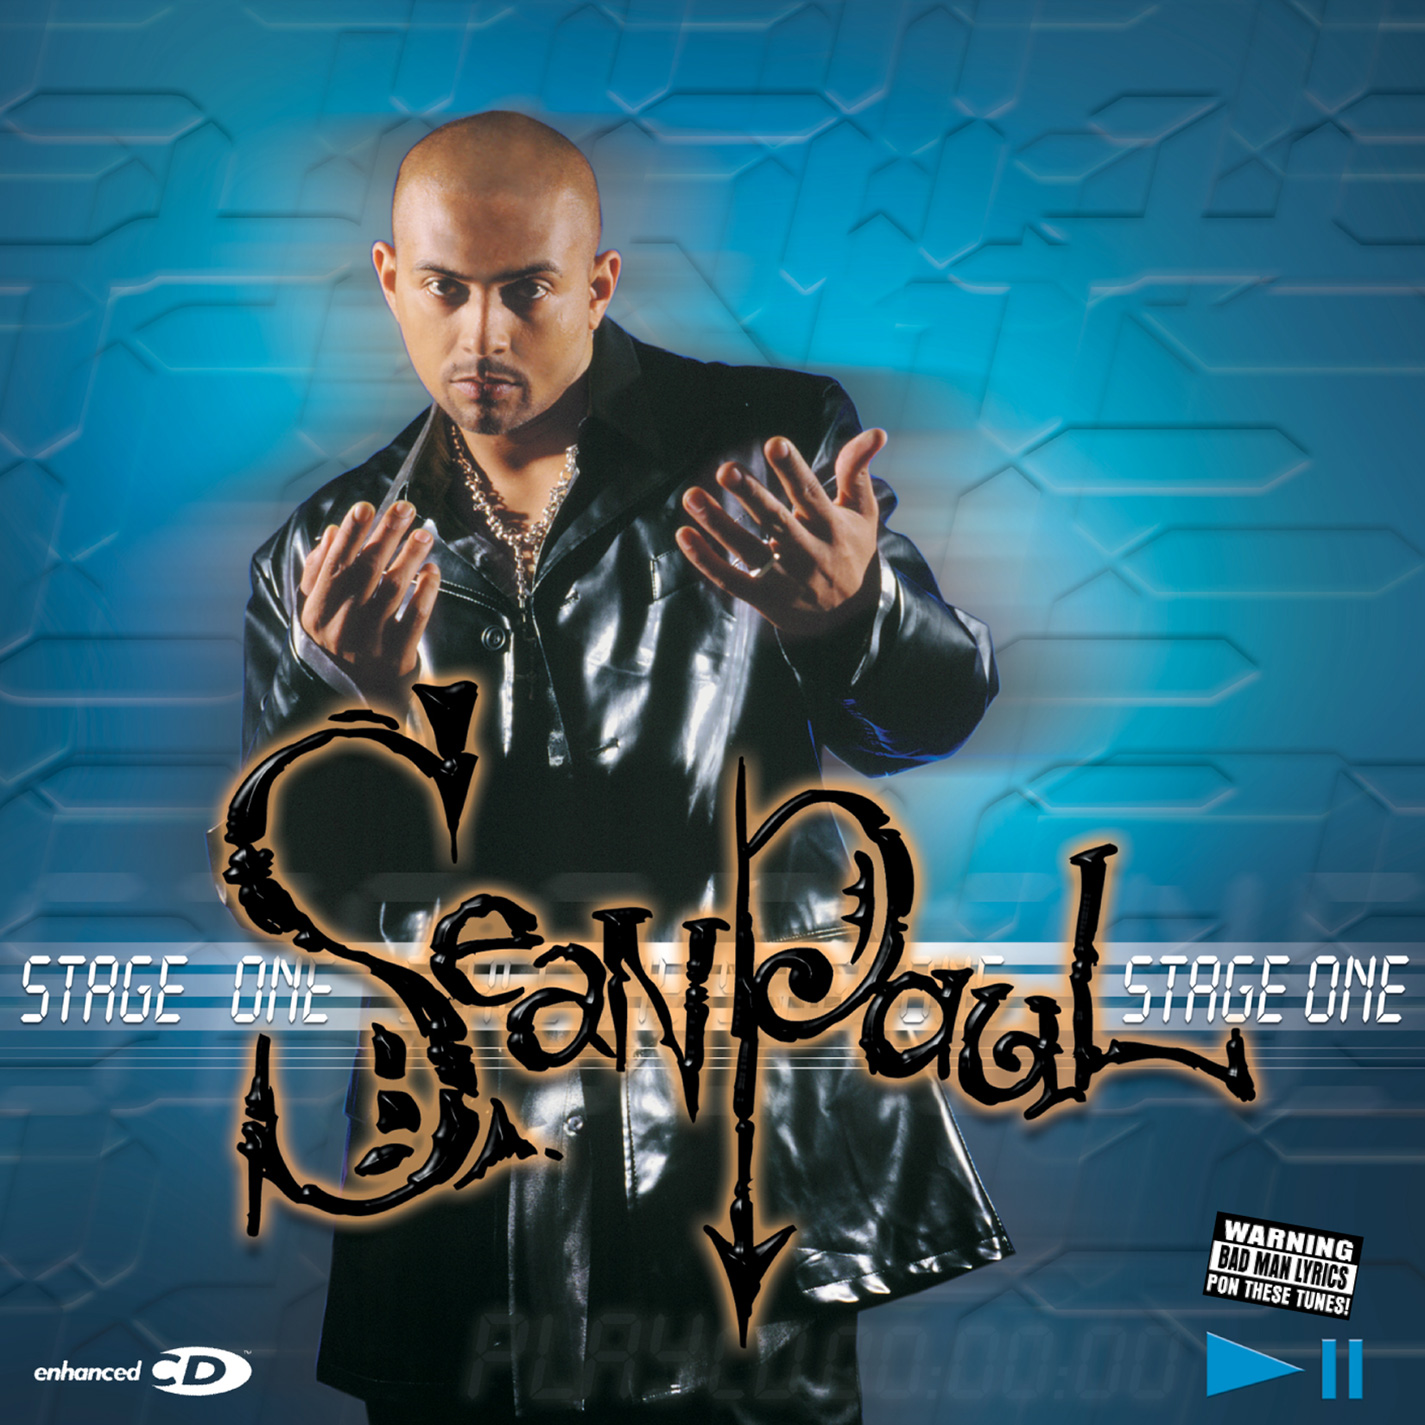 Sean Paul Stage One Vp Records